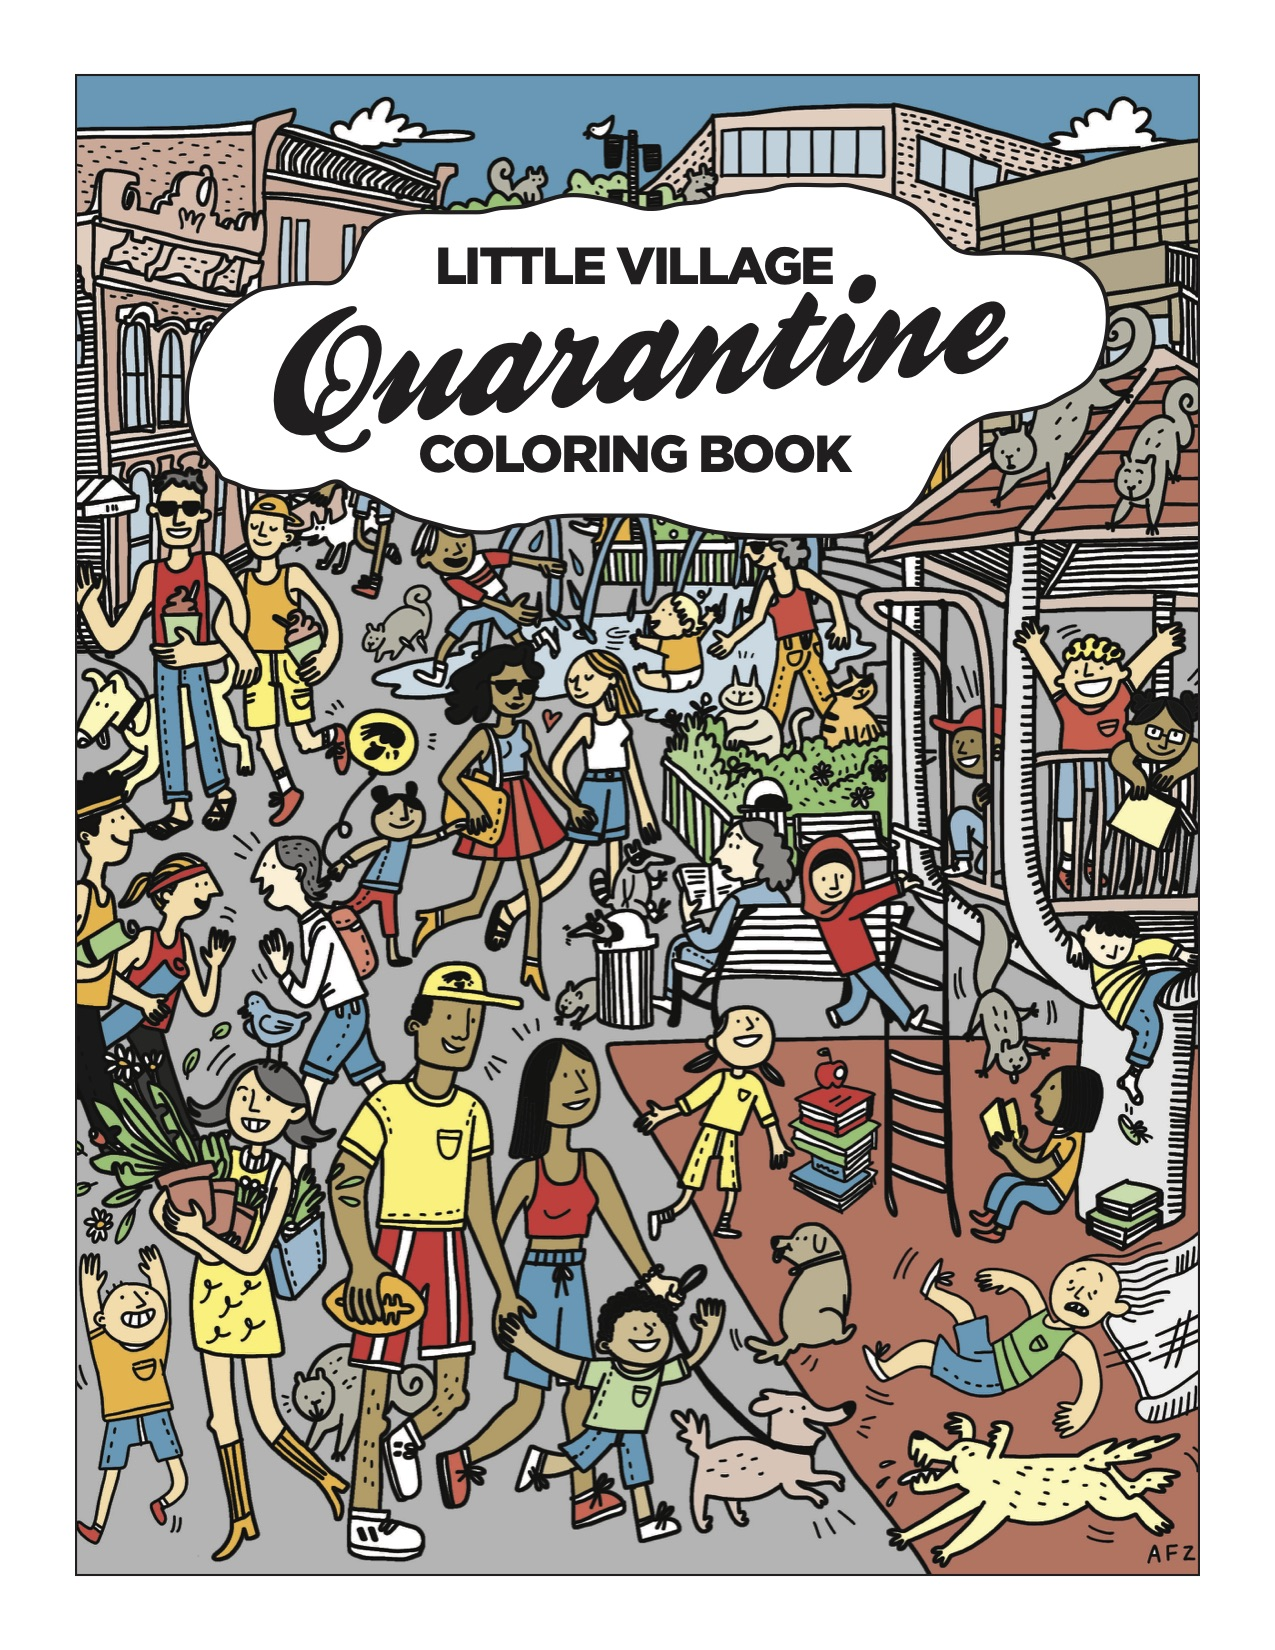 Little Village Quarantine Coloring Book Digital Download Little Village